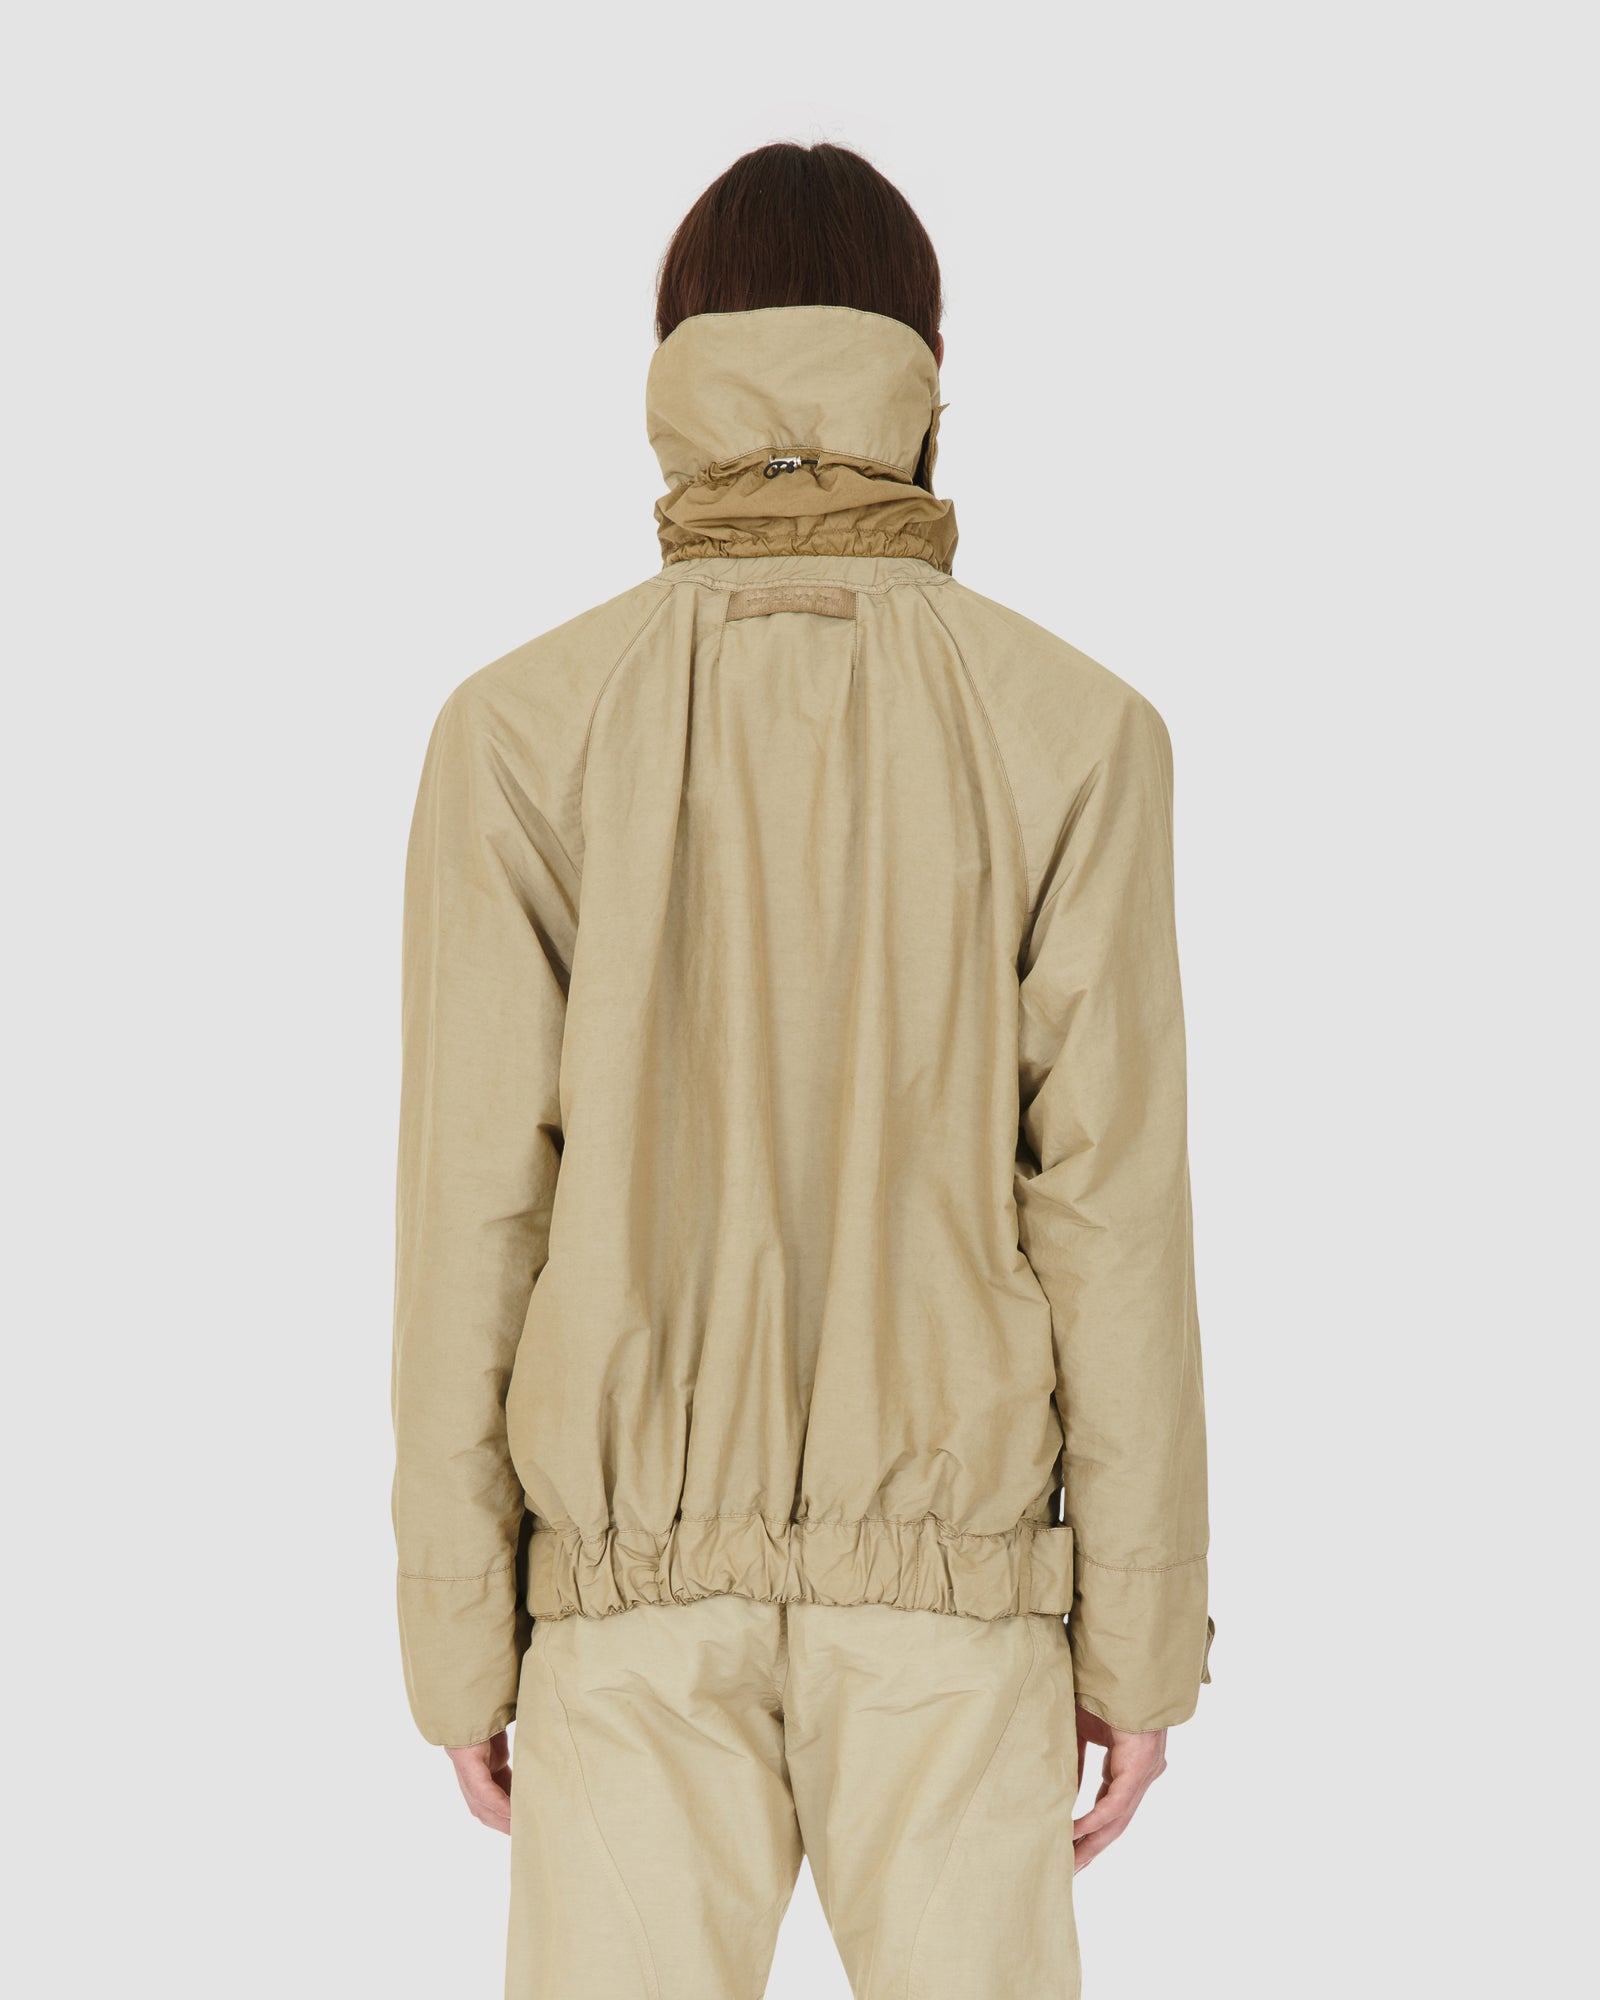 1017 ALYX 9SM | NIGHT CRAWLER JACKET | Outerwear | DARK TAN, Google Shopping, Man, MEN, Outerwear, S20, S20 Drop II, Tan